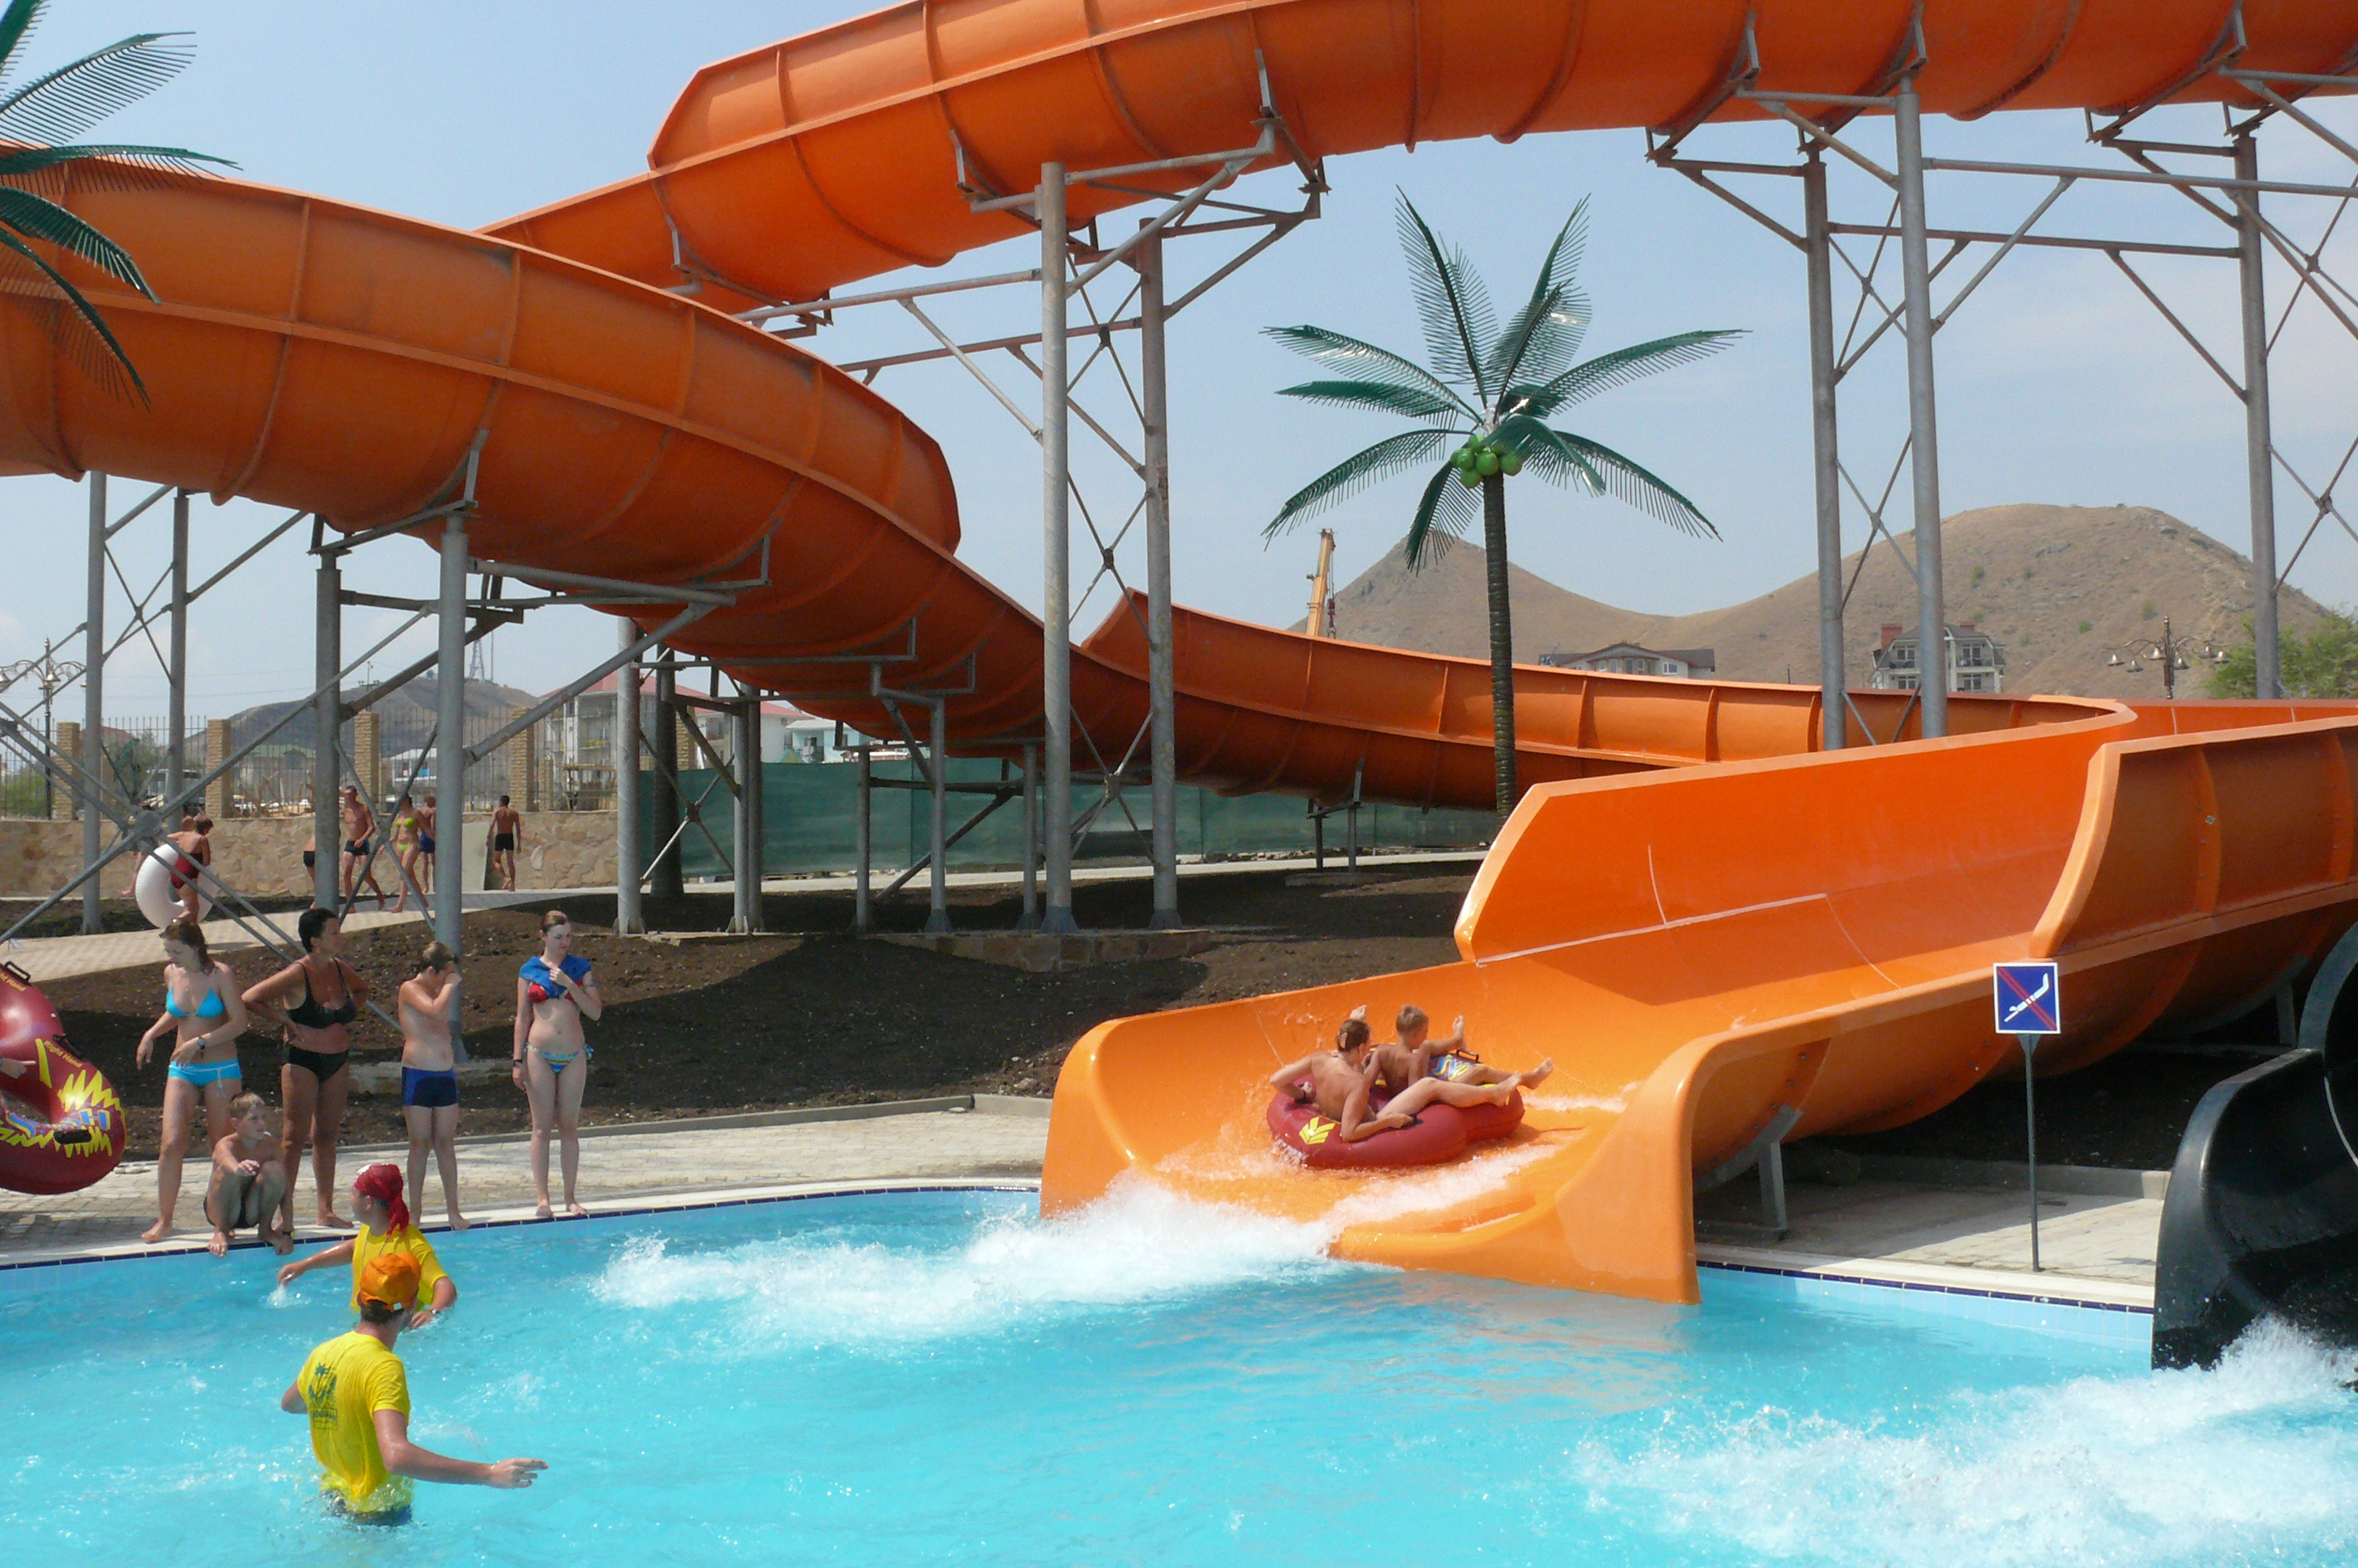 https://aquapark-koktebel.ru/wp-content/uploads/2020/04/Semya-na-plotu.jpg